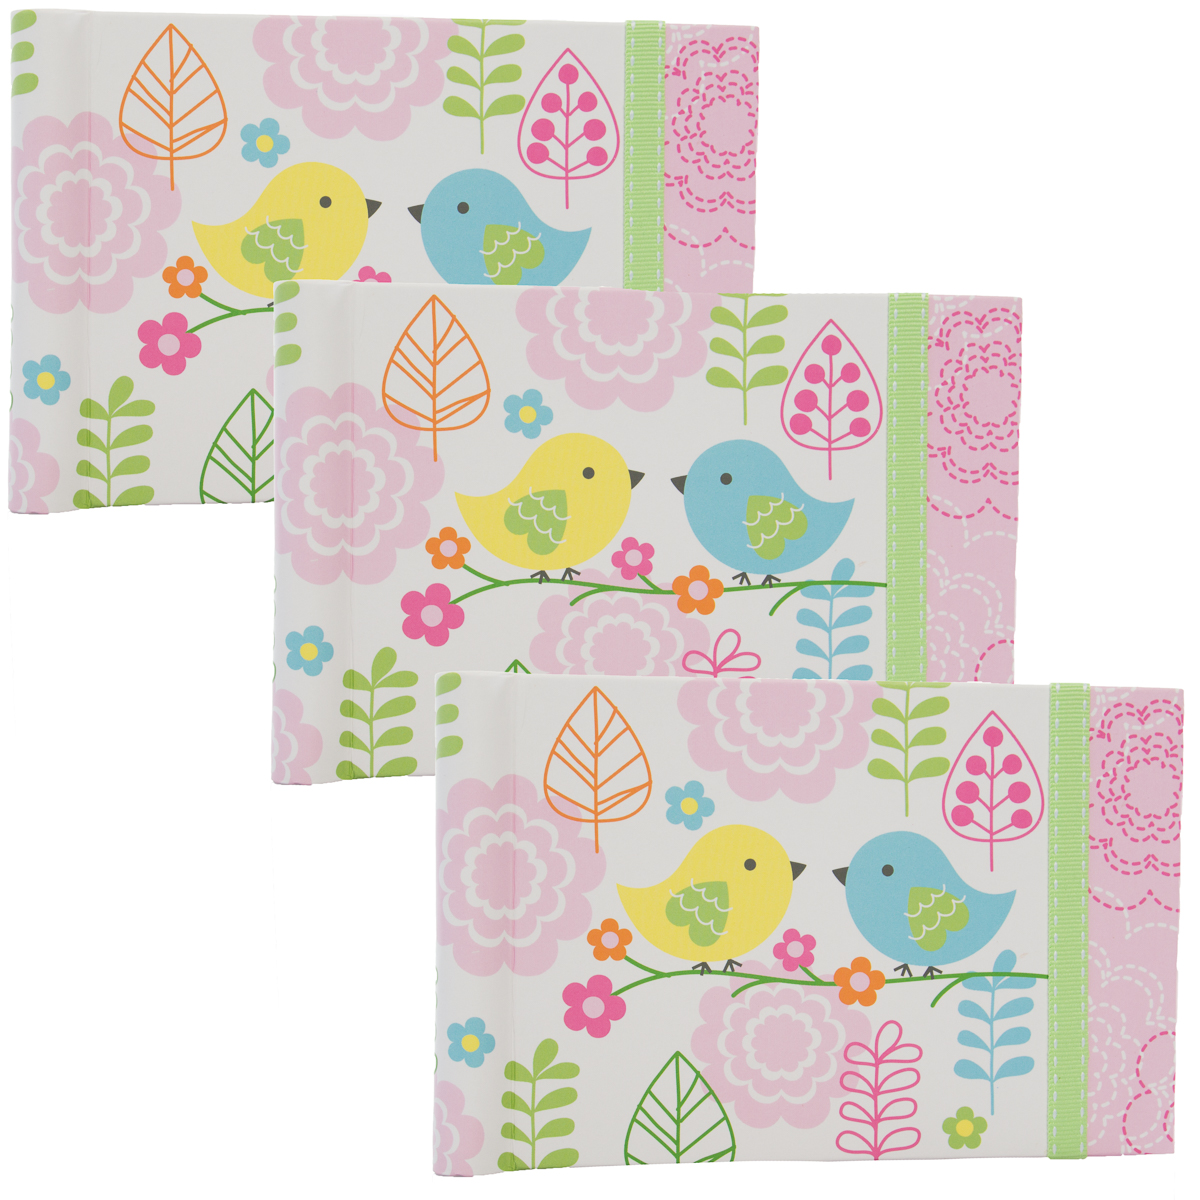 Nojo 3 Pack Baby Brag Book 4x6 Set With 24 Pages For Baby Book